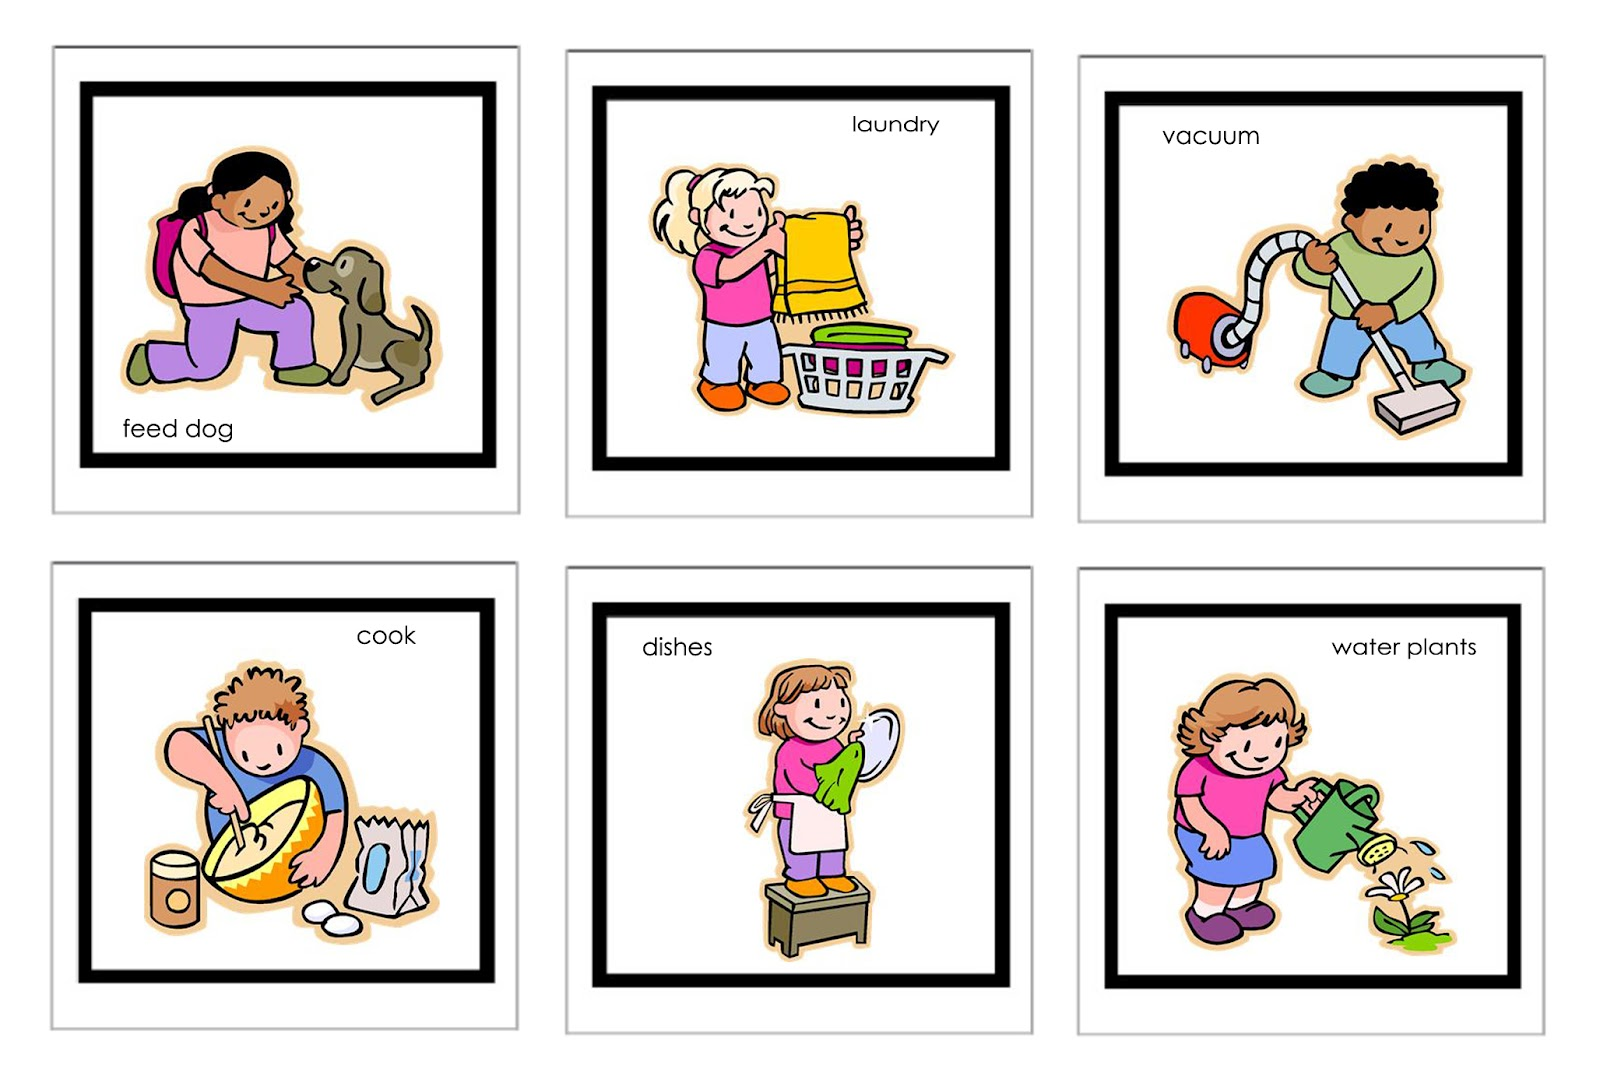 Clean up bedroom kids clipart.